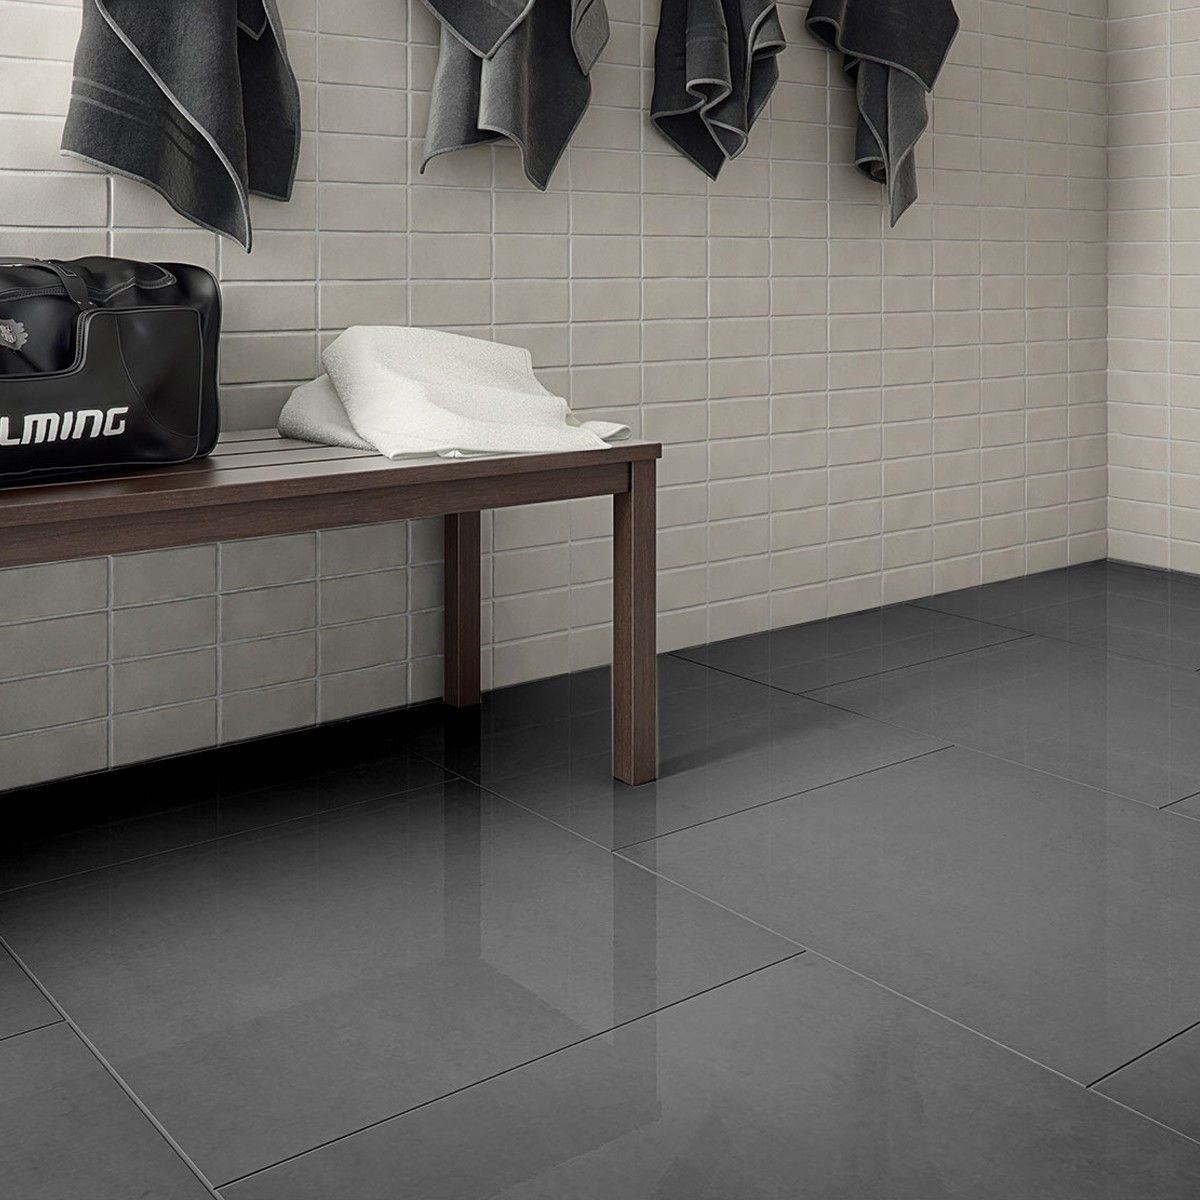 tiles kitchen floors tile floor tiles for walls tiles online bathroom